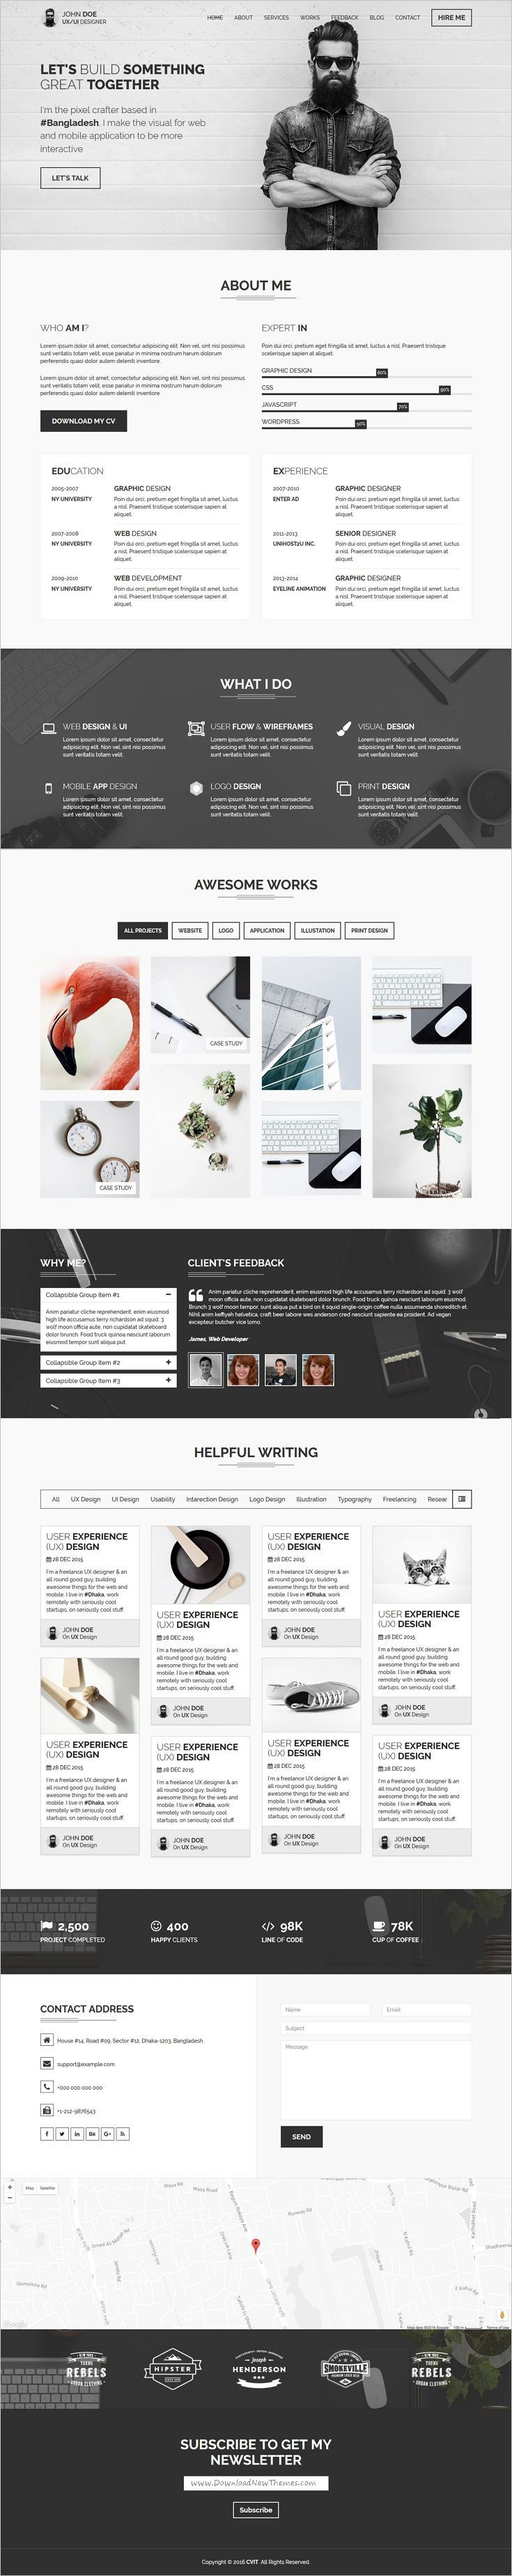 cvit is a multipurpose bootstrap template for personal